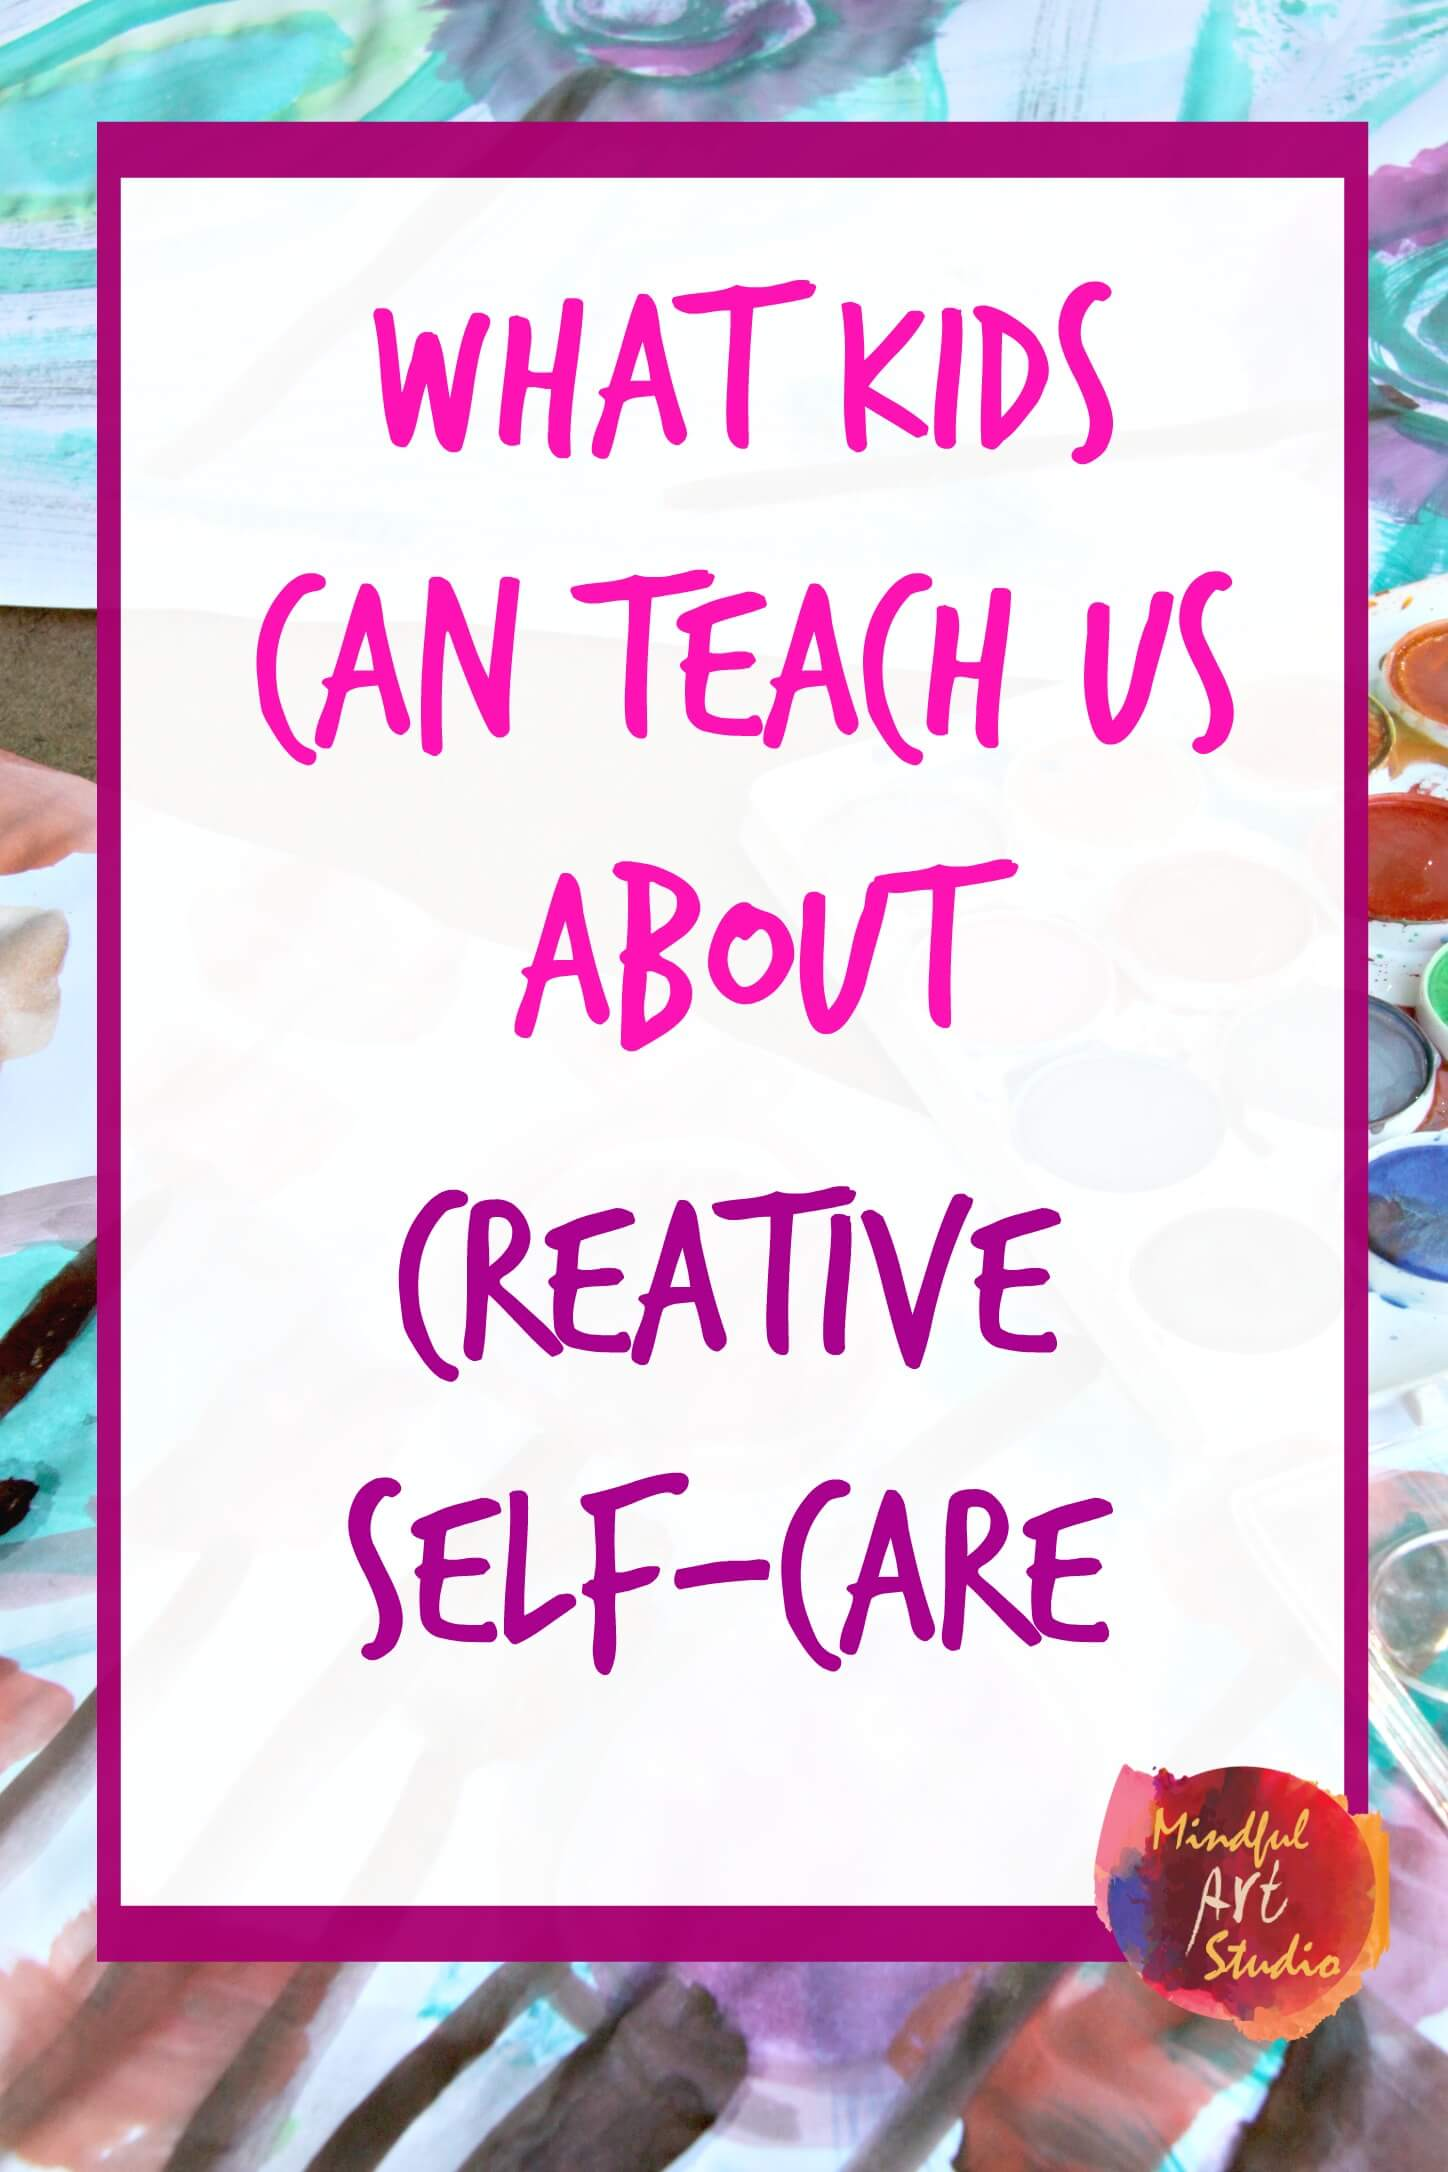 What Kids Can Teach Us About Creative Self-Care